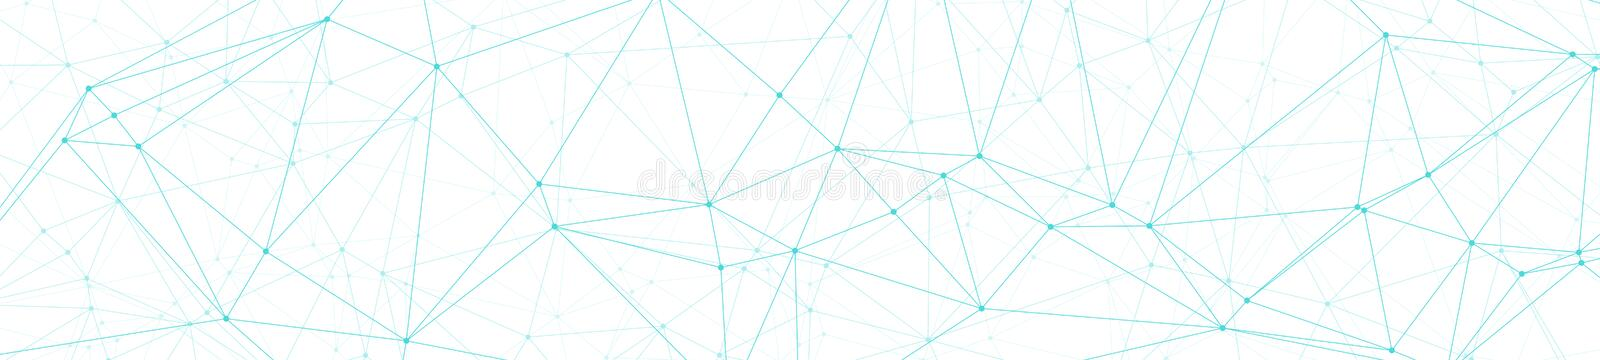 Wide tech triangles wires, abstract polygonal concept, vector lines and circle dots connected, wide banner or header background. Technology science background stock illustration